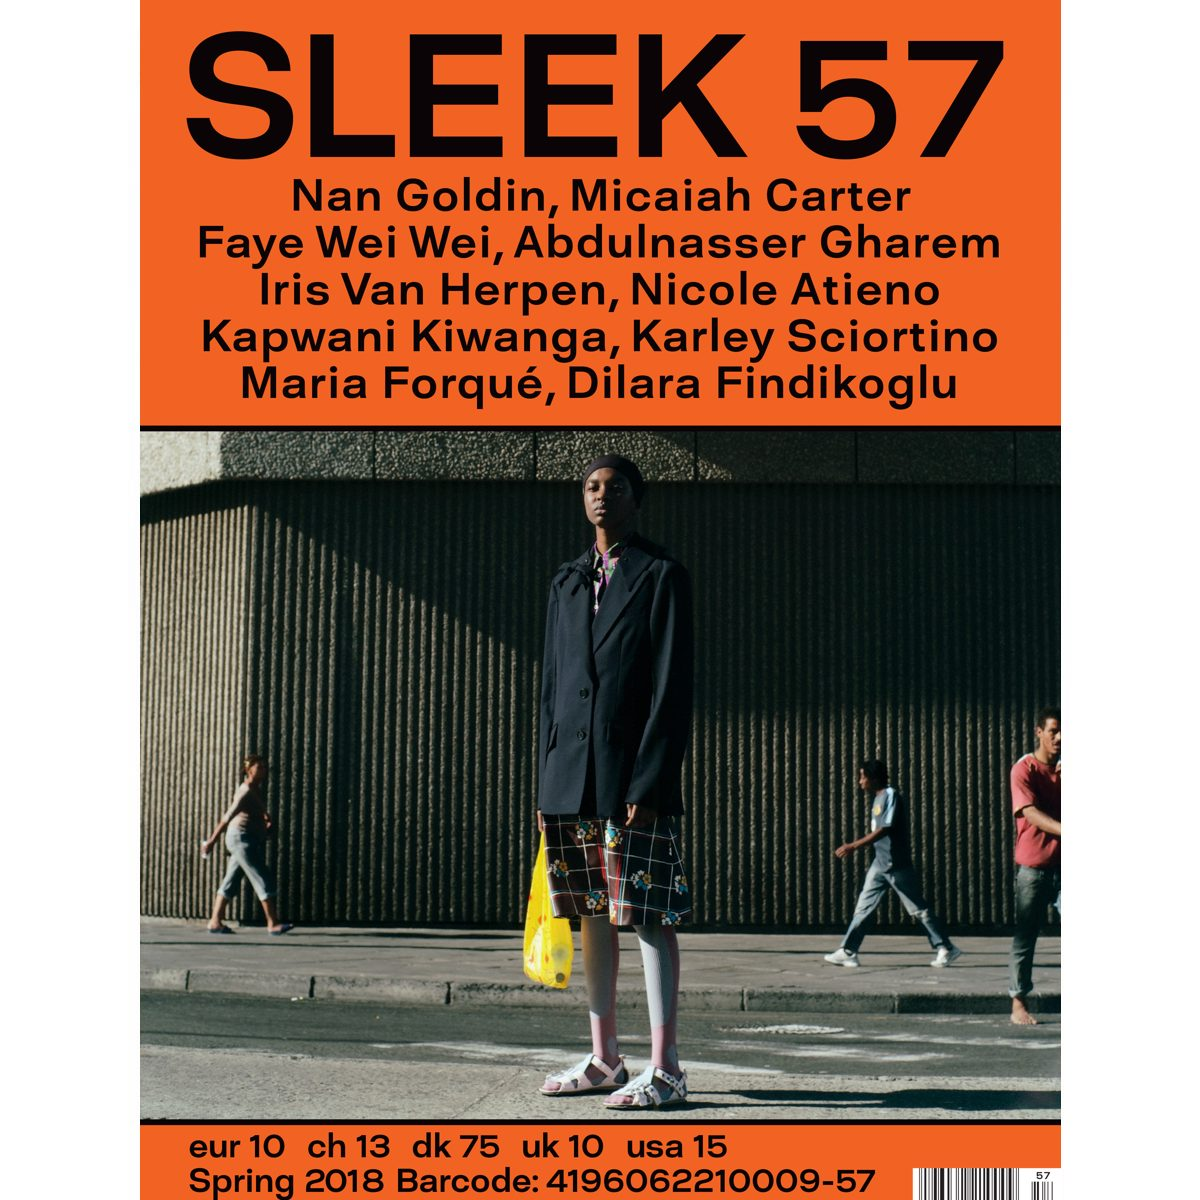 Sleek Magazine: Issue 57, Spring 2018 - The Library Project